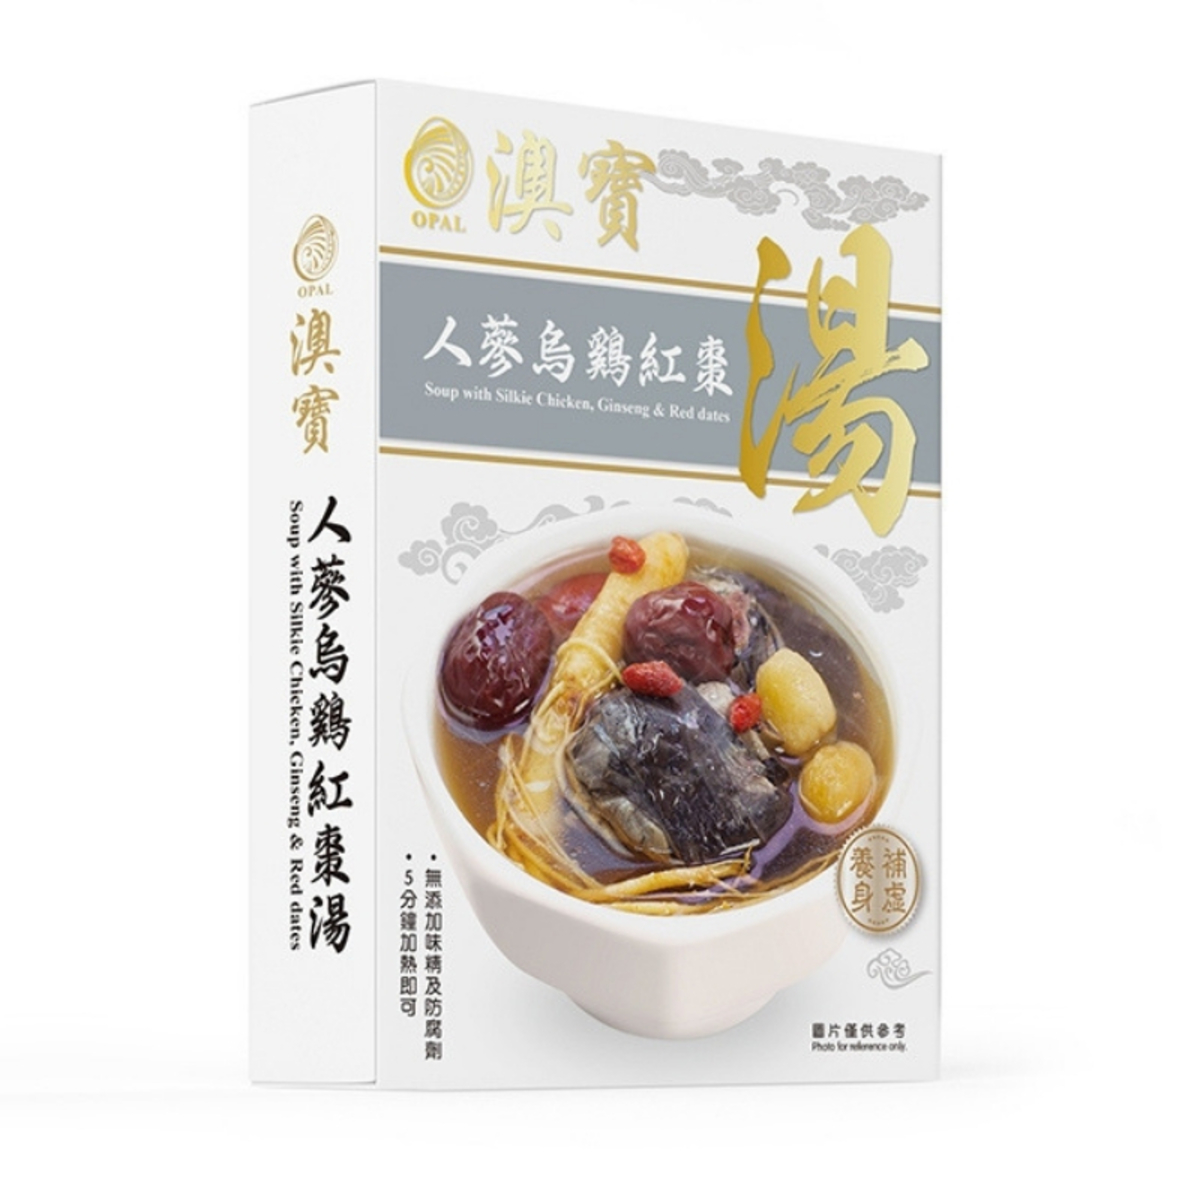 Soup with Siikie Chickenm Ginseng & Red dates